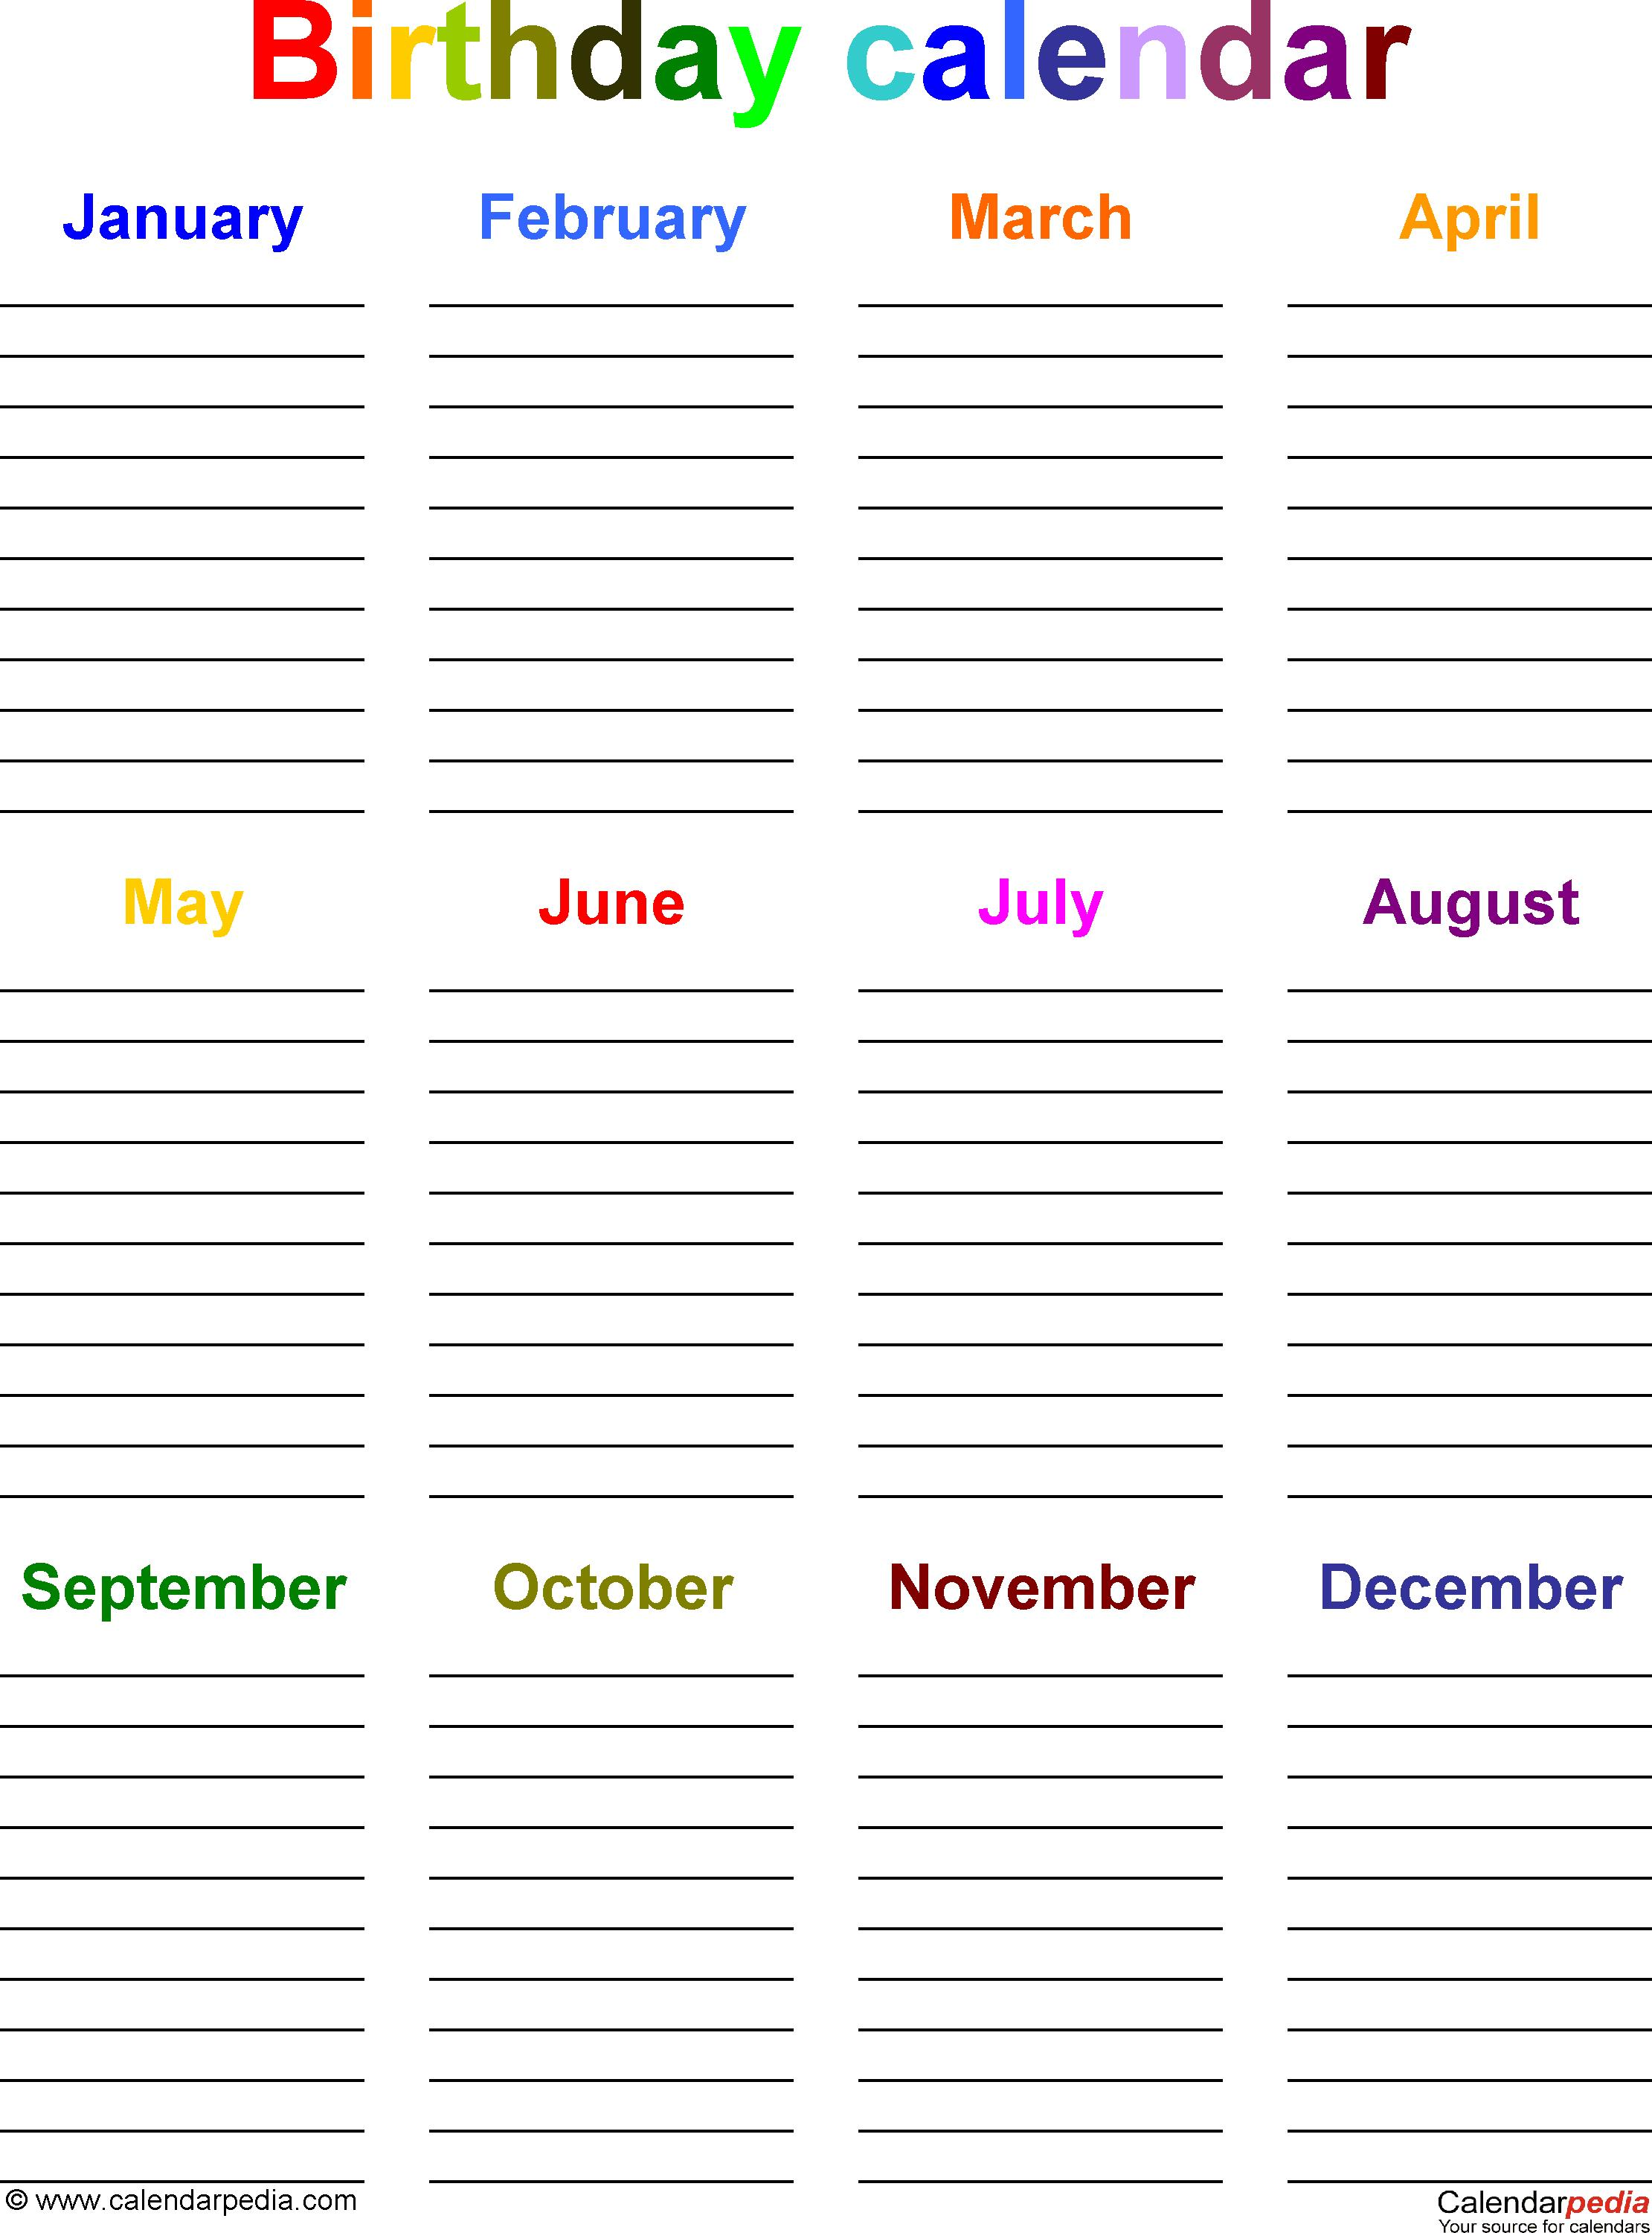 birthday calendar design templates ; birthday-calendar-p